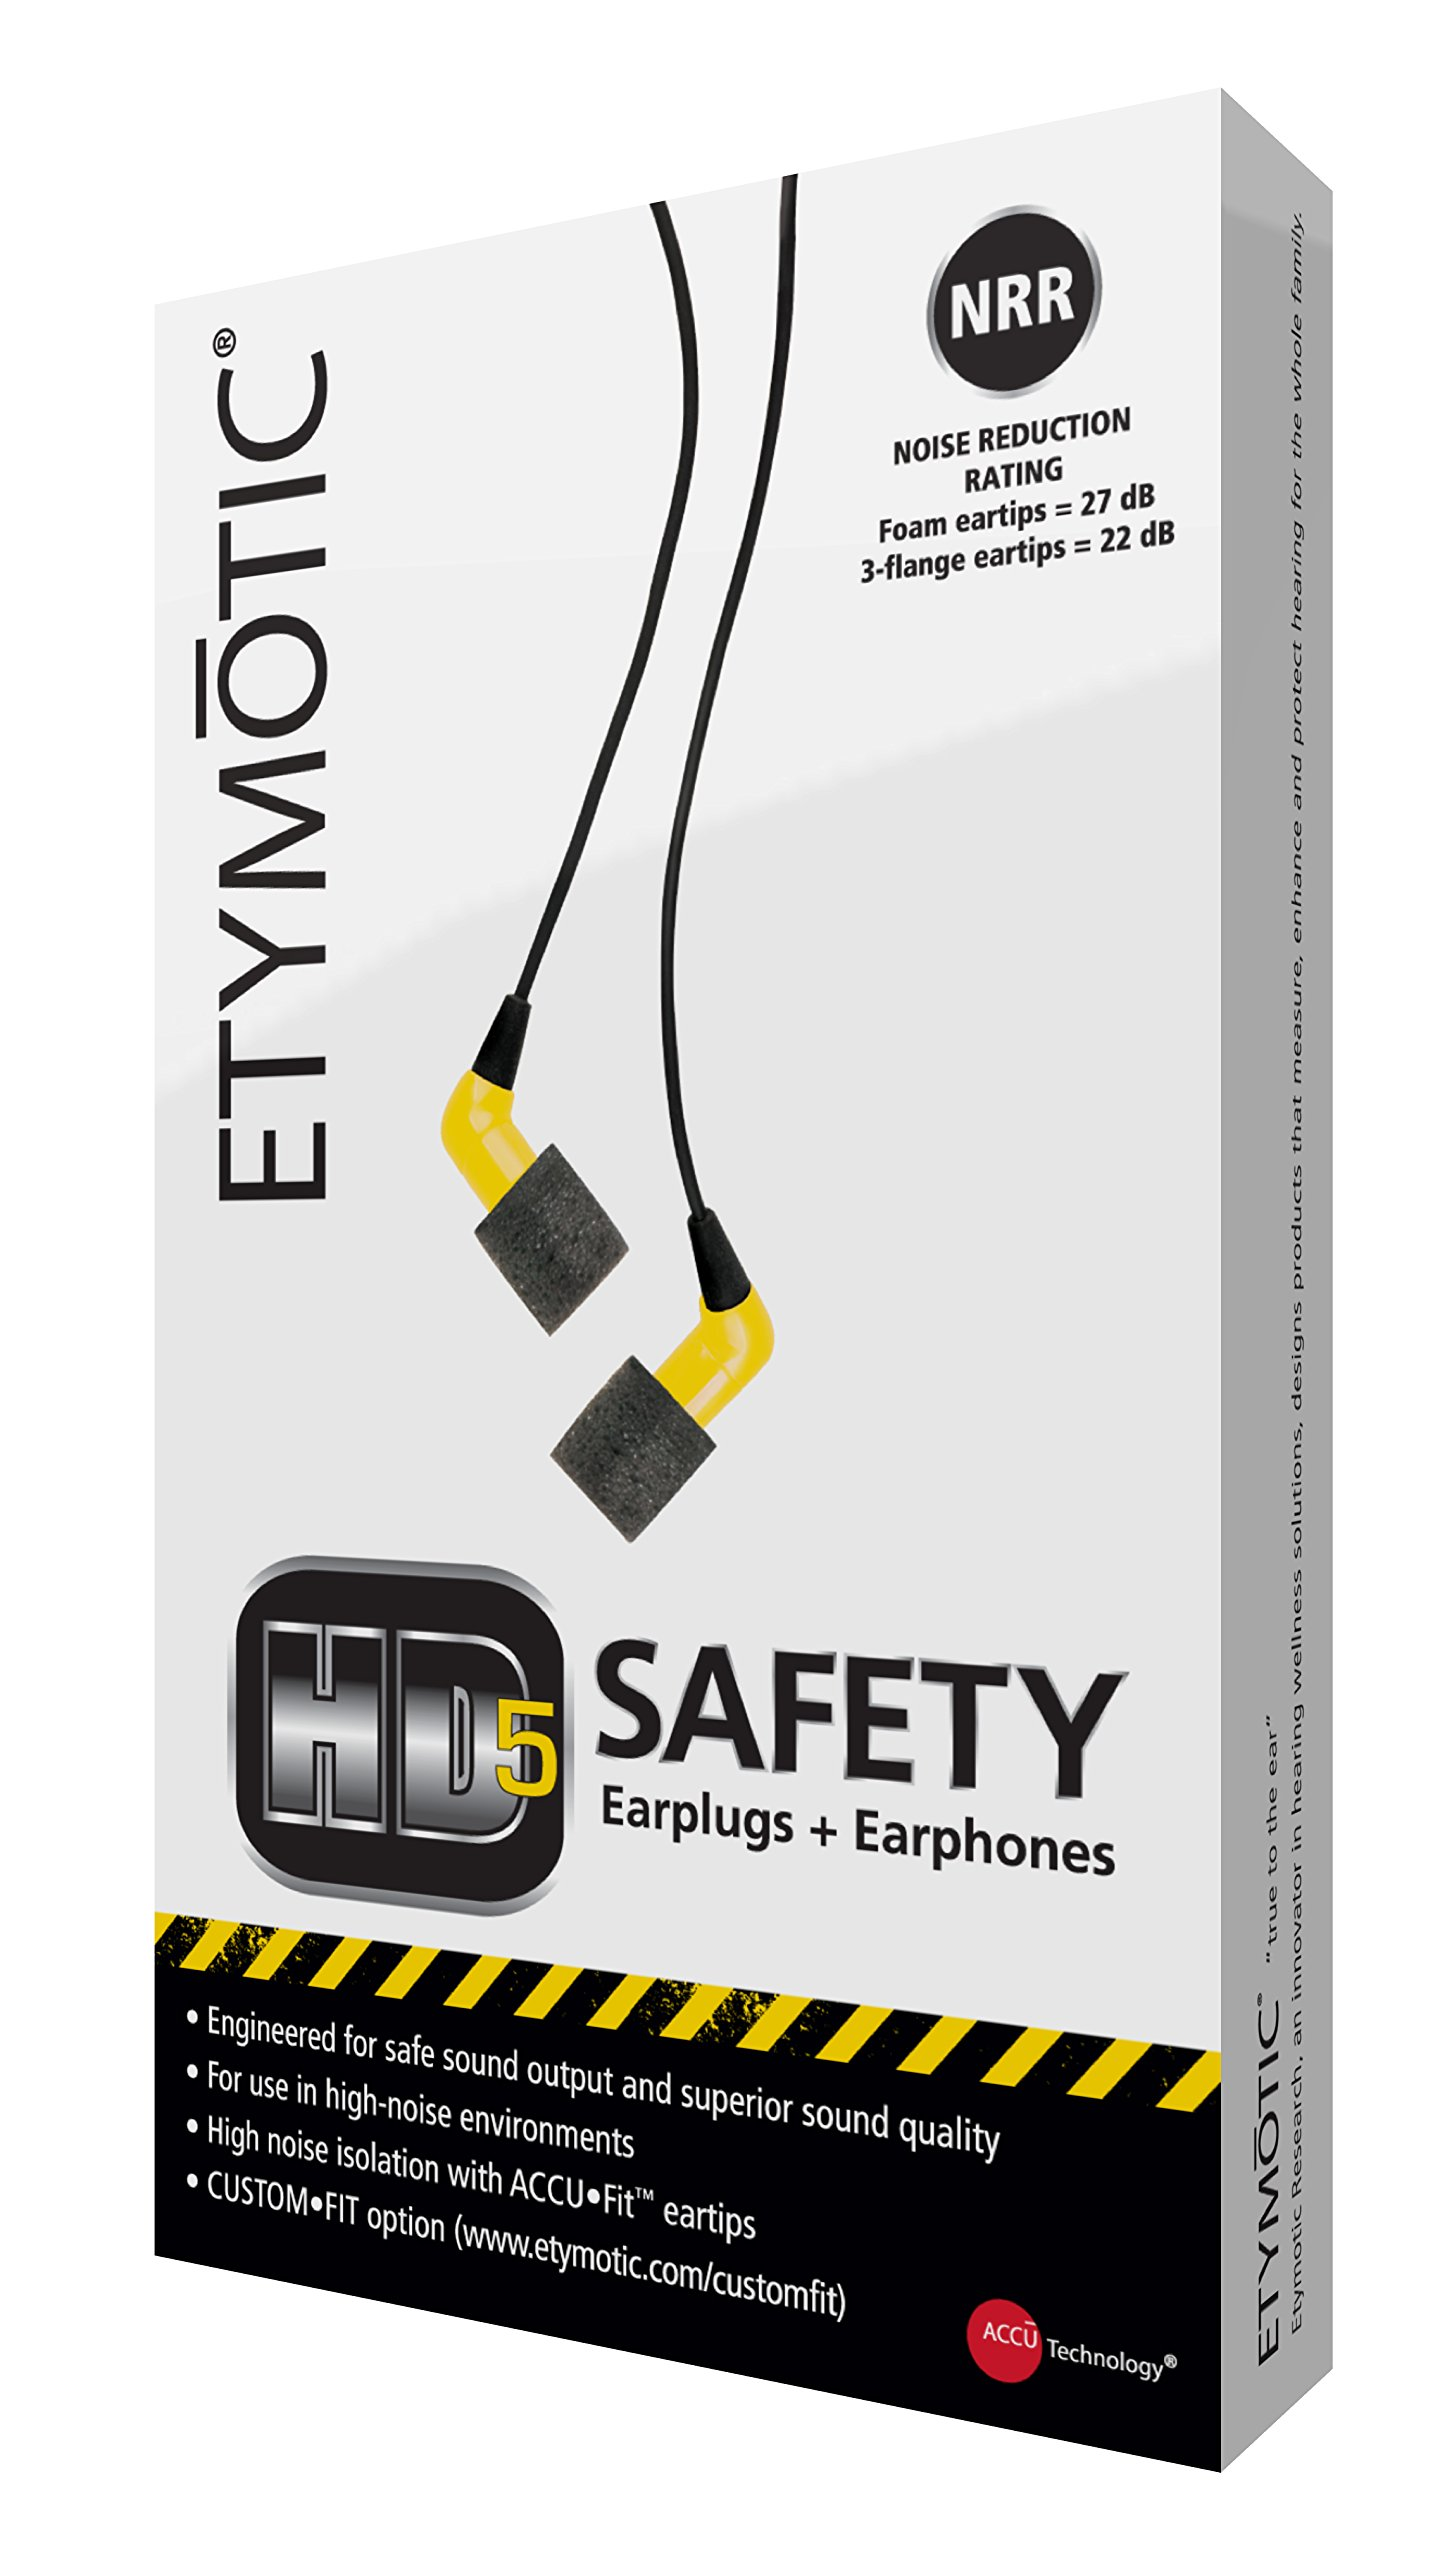 Etymotic HD5 Safety Headset and Earphones - Industrial Hearing Protection, Safe Listening Earphones, Yellow by Etymotic Research (Image #4)